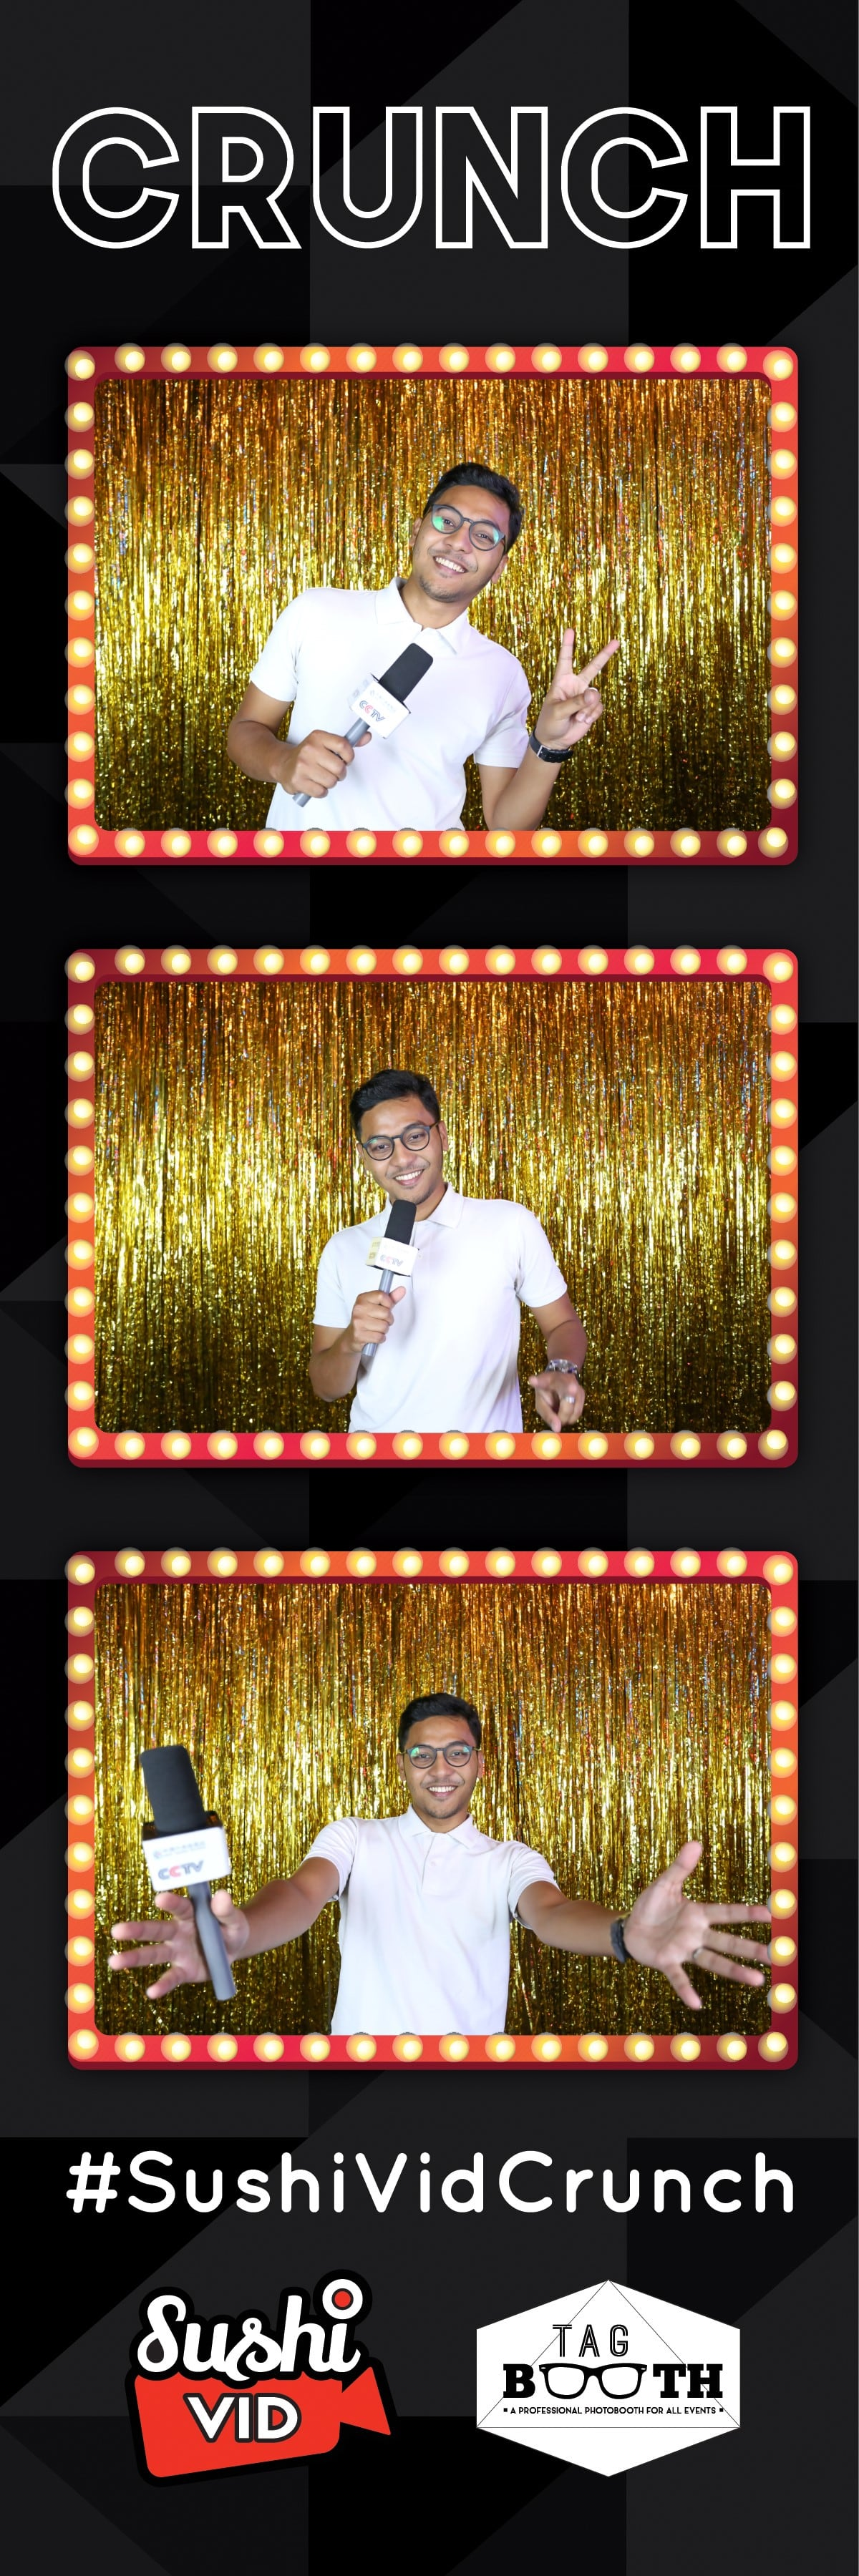 Sushivid+crunch+tagbooth1+11